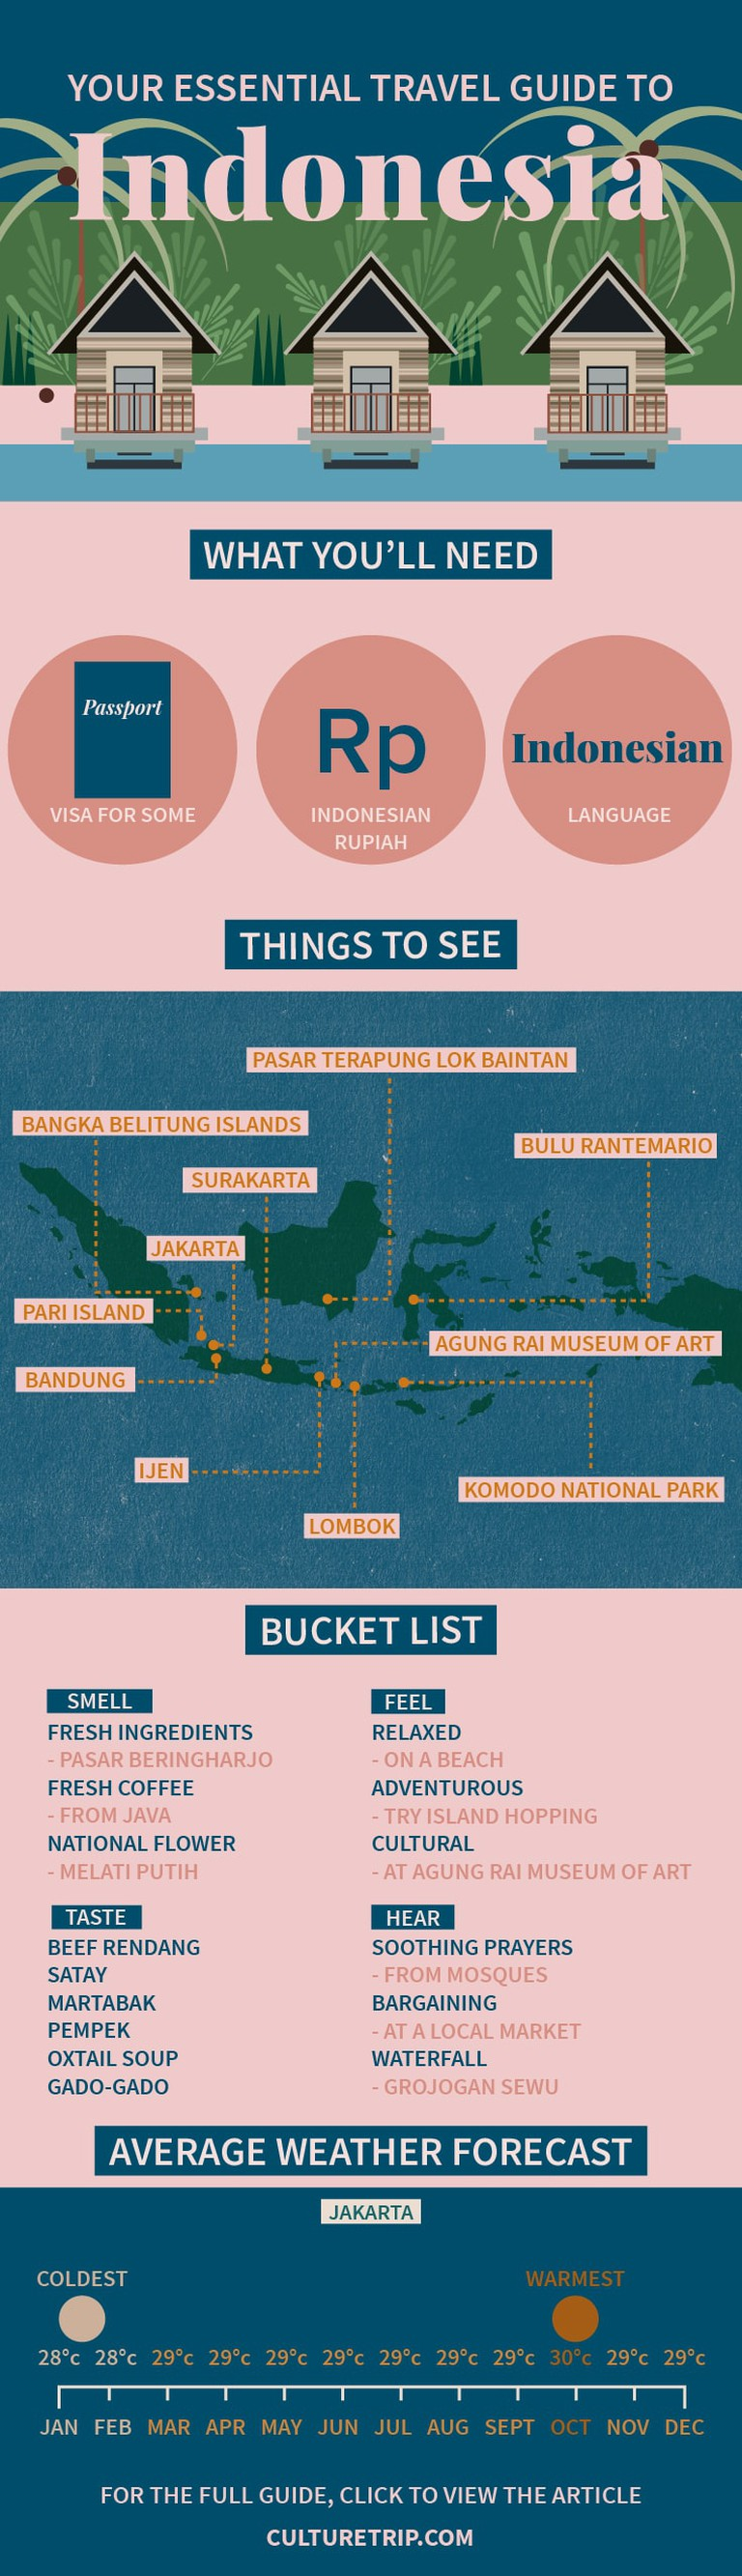 A travel guide for planning your trip to Indonesia.